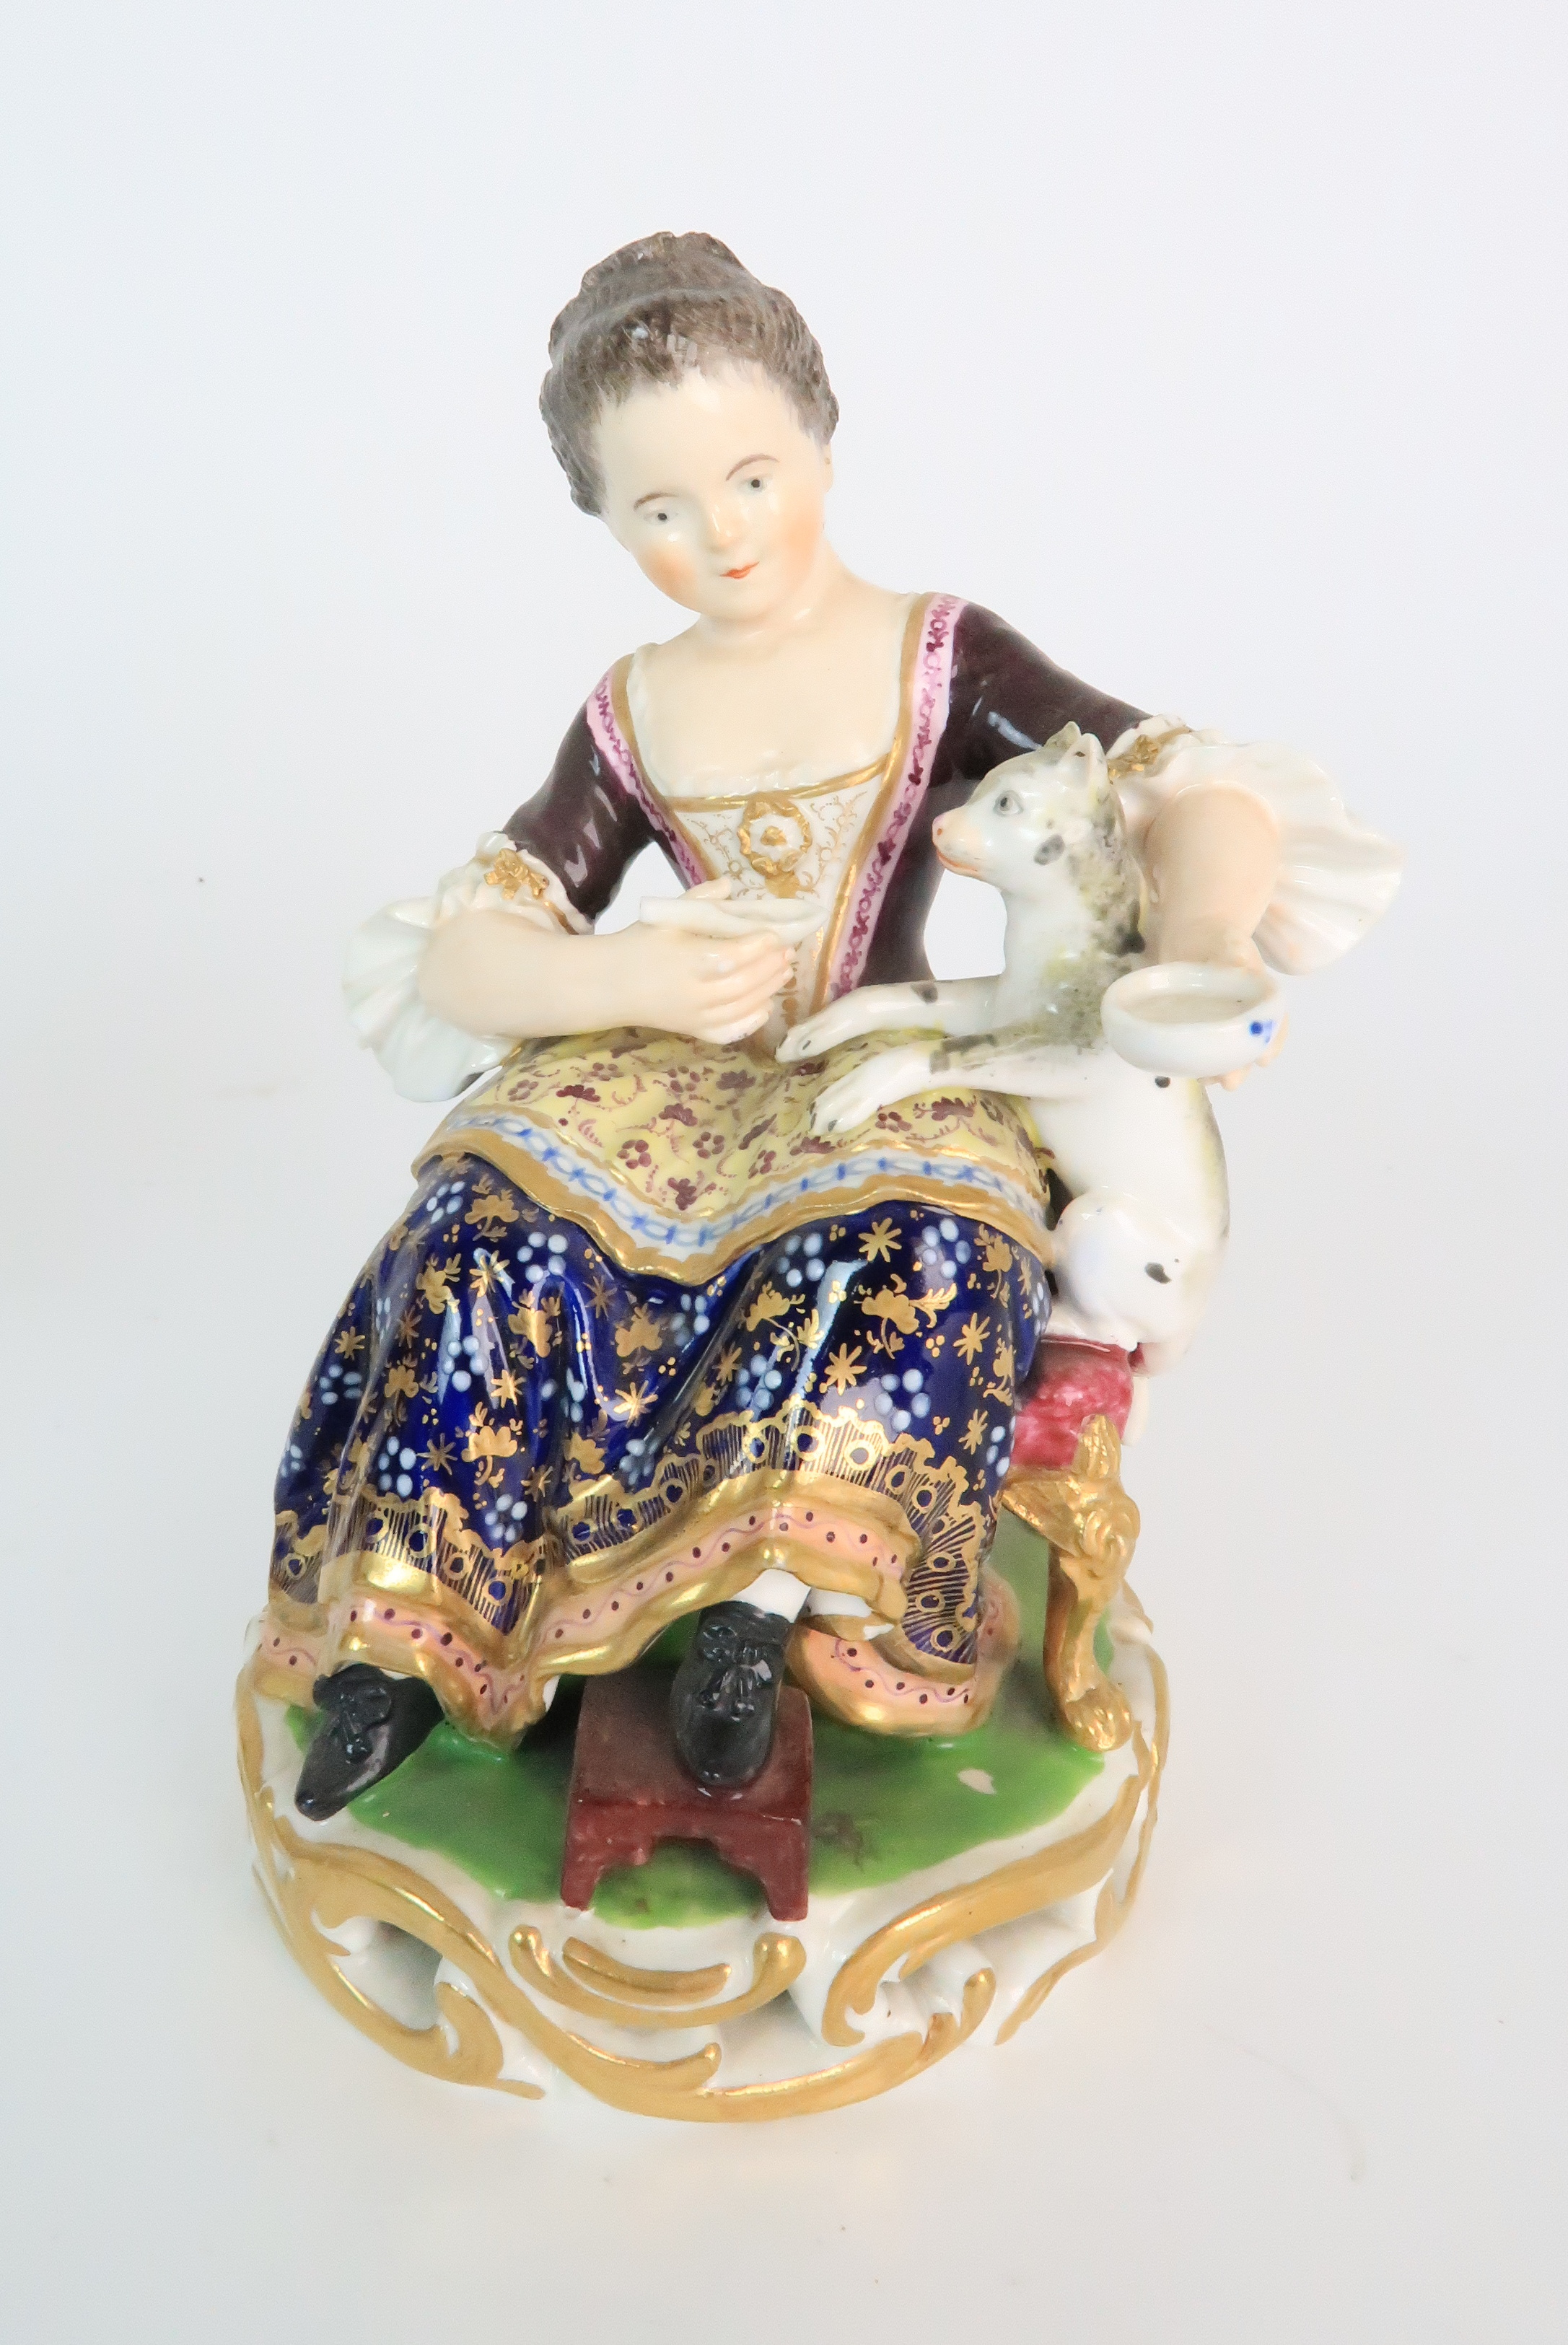 A PAIR OF DERBY PORCELAIN FIGURES early 19th century, modelled as a seated boy playing with a dog - Image 6 of 12